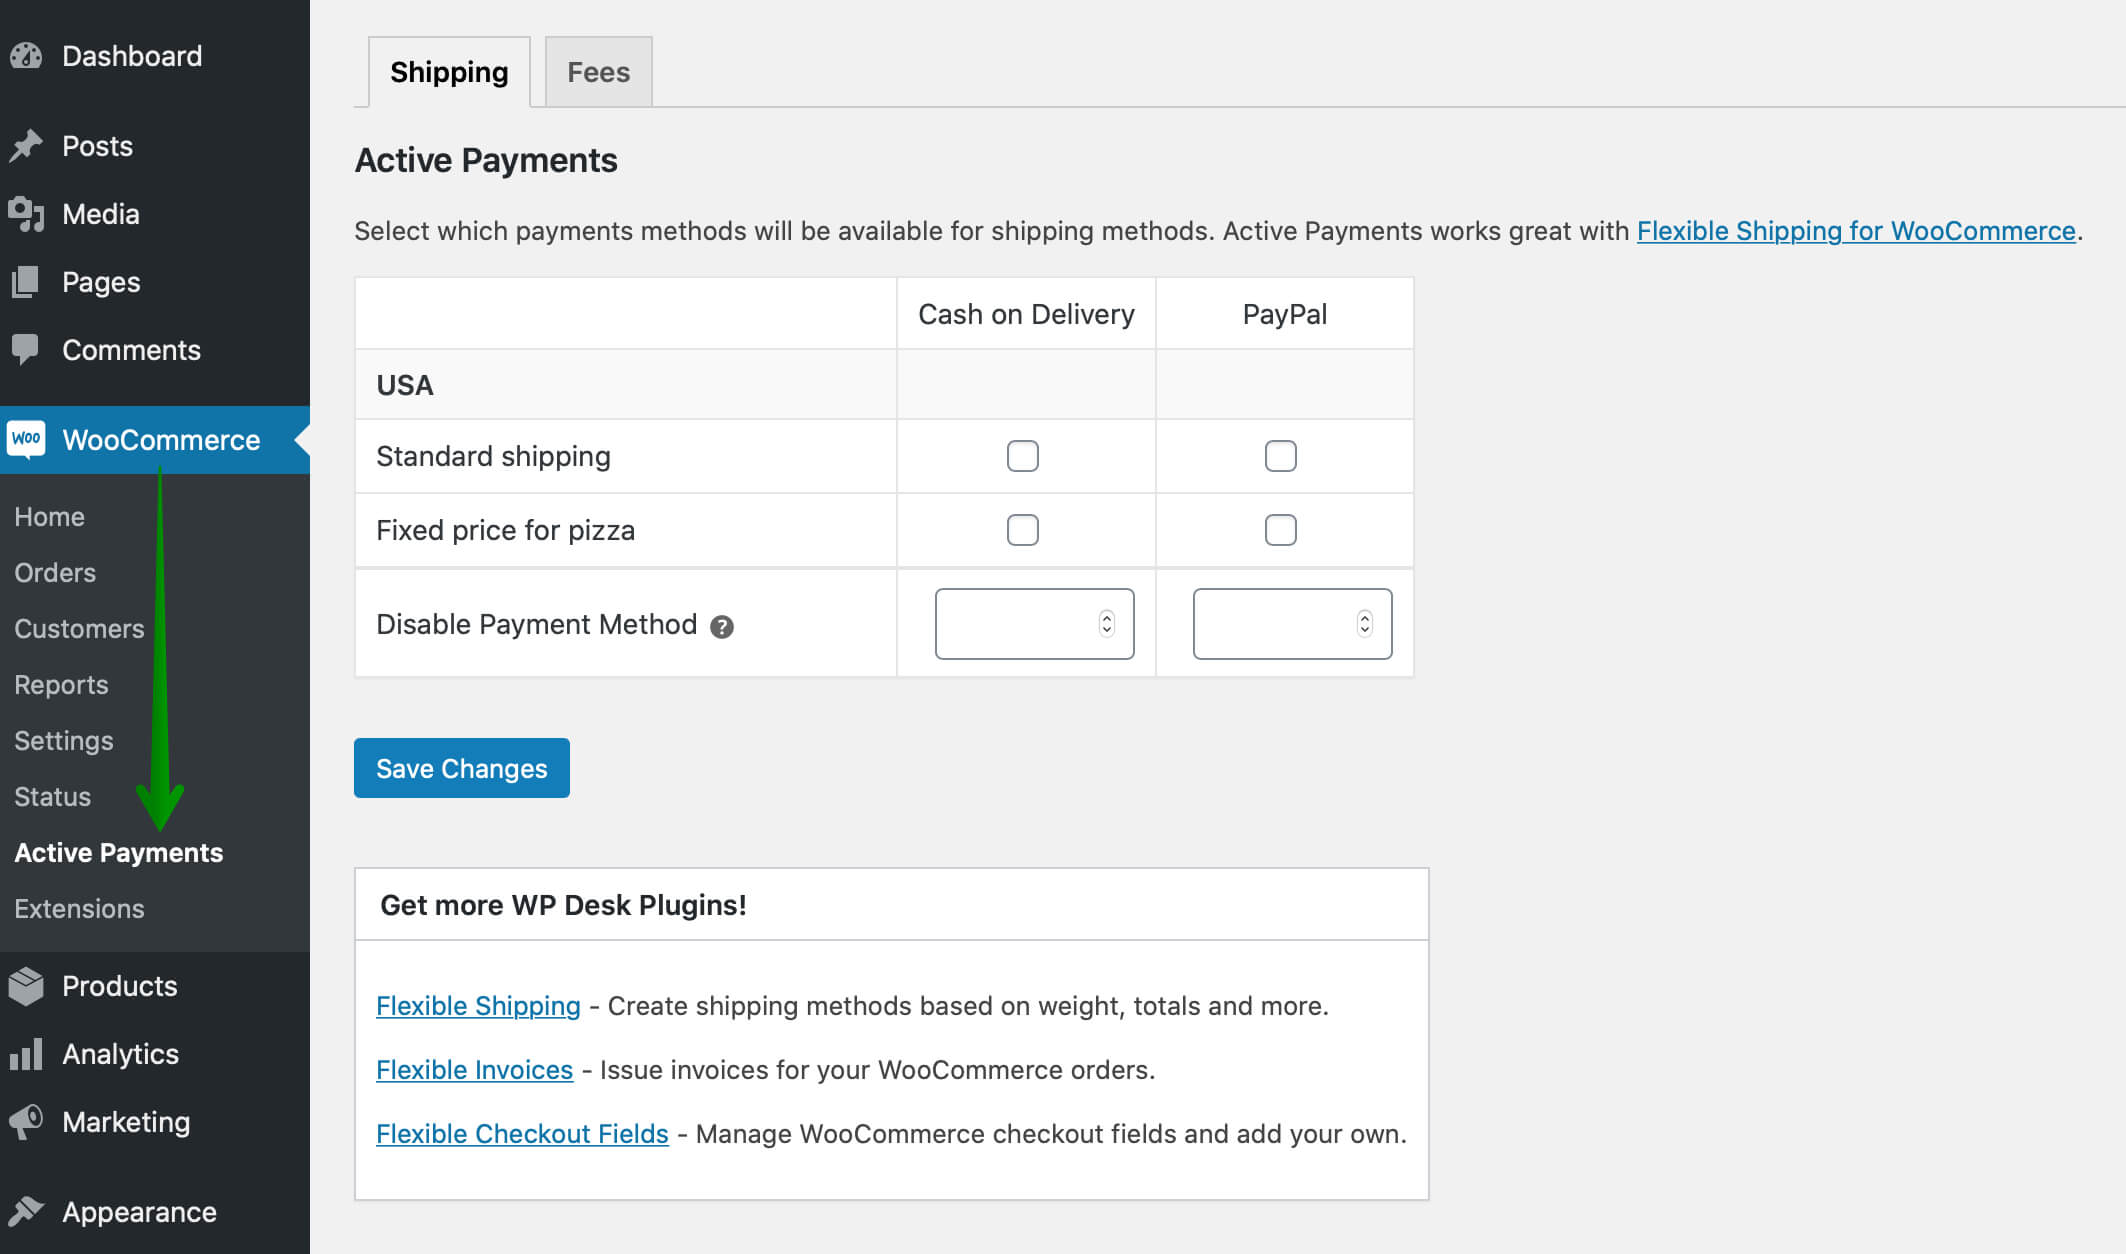 WooCommerce Active Payments settings